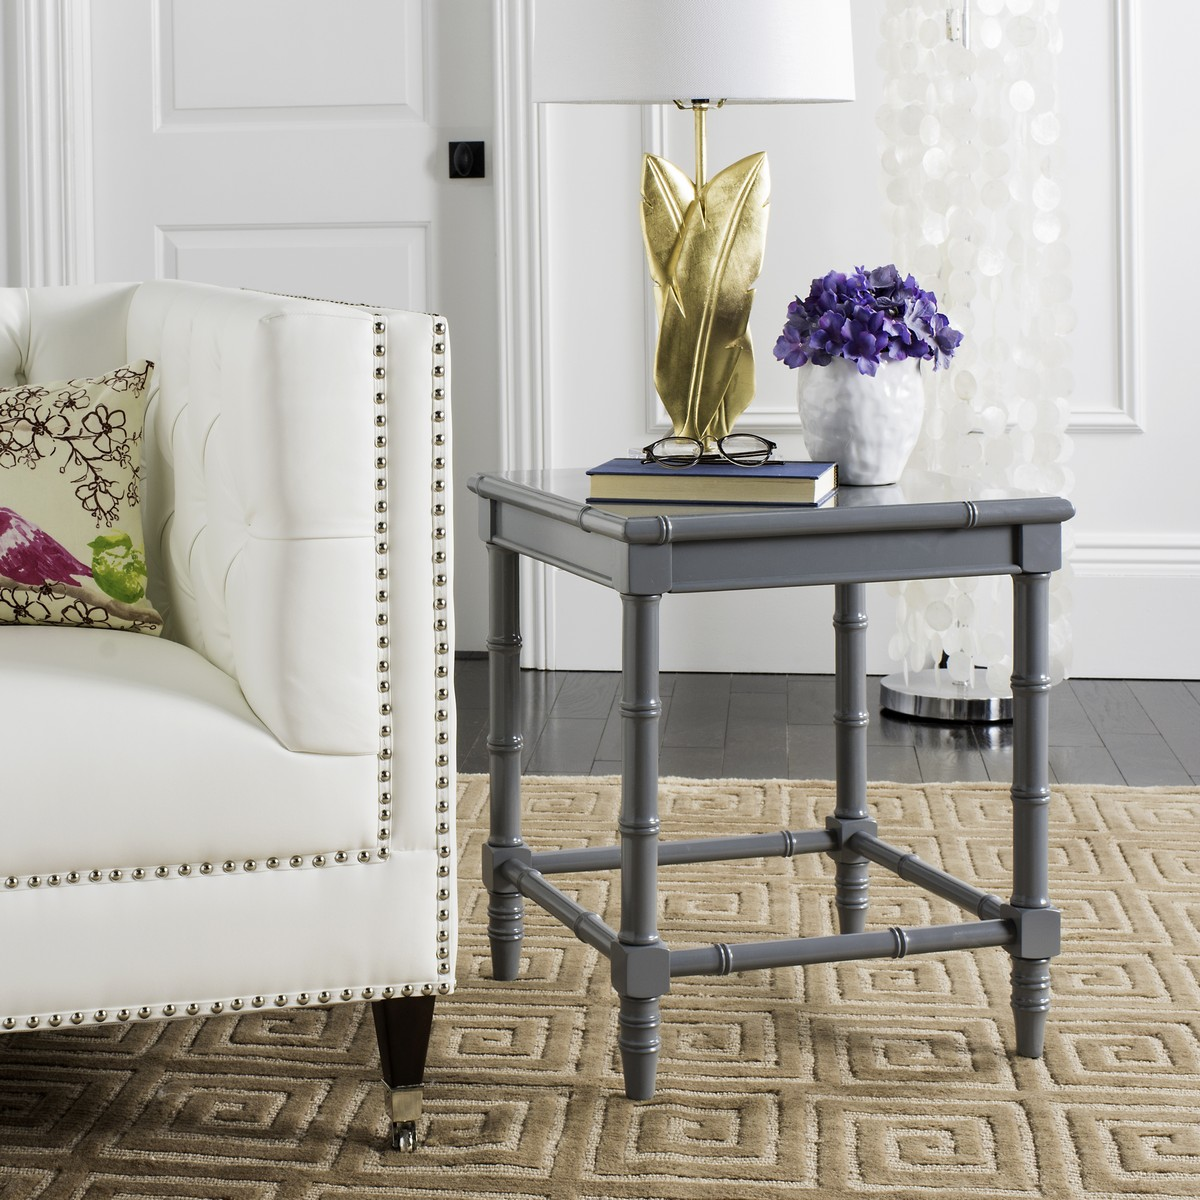 accent tables nightstands furniture safavieh room table behind couch coastal neutral grey canvas for tray refreshments displaying treasures its chic lacquered bamboo makes instant